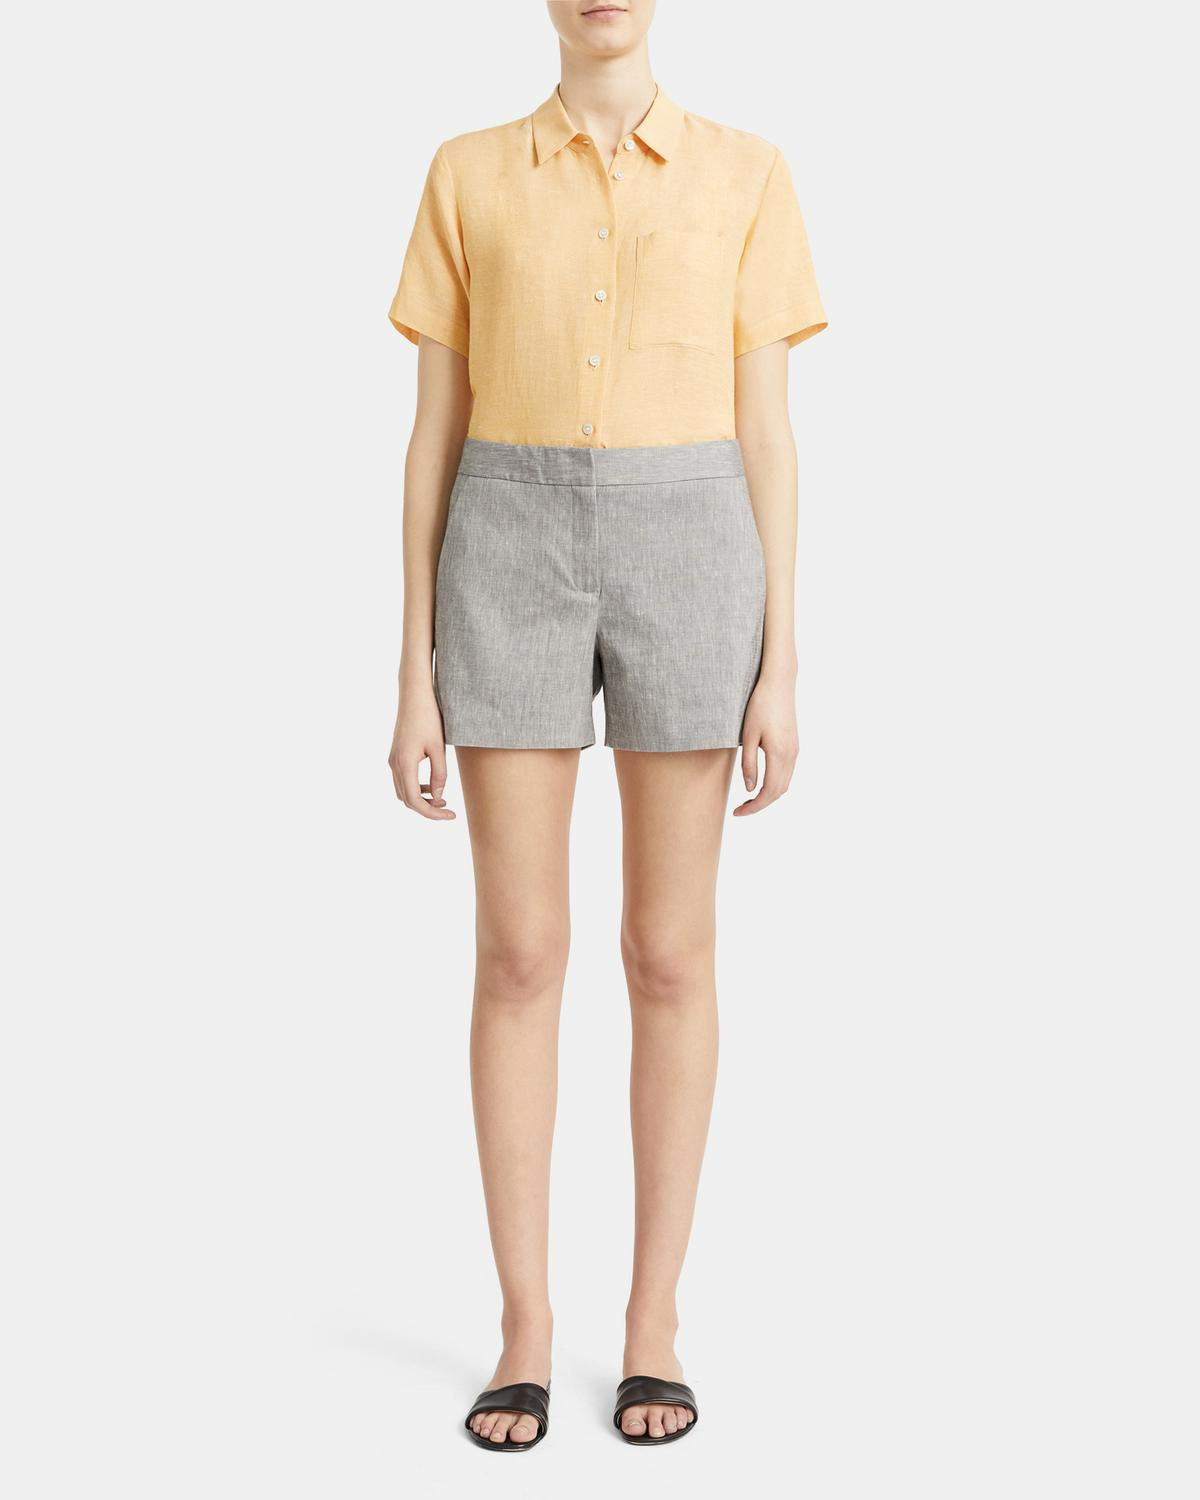 Tailored Short in Mélange Crunch Linen